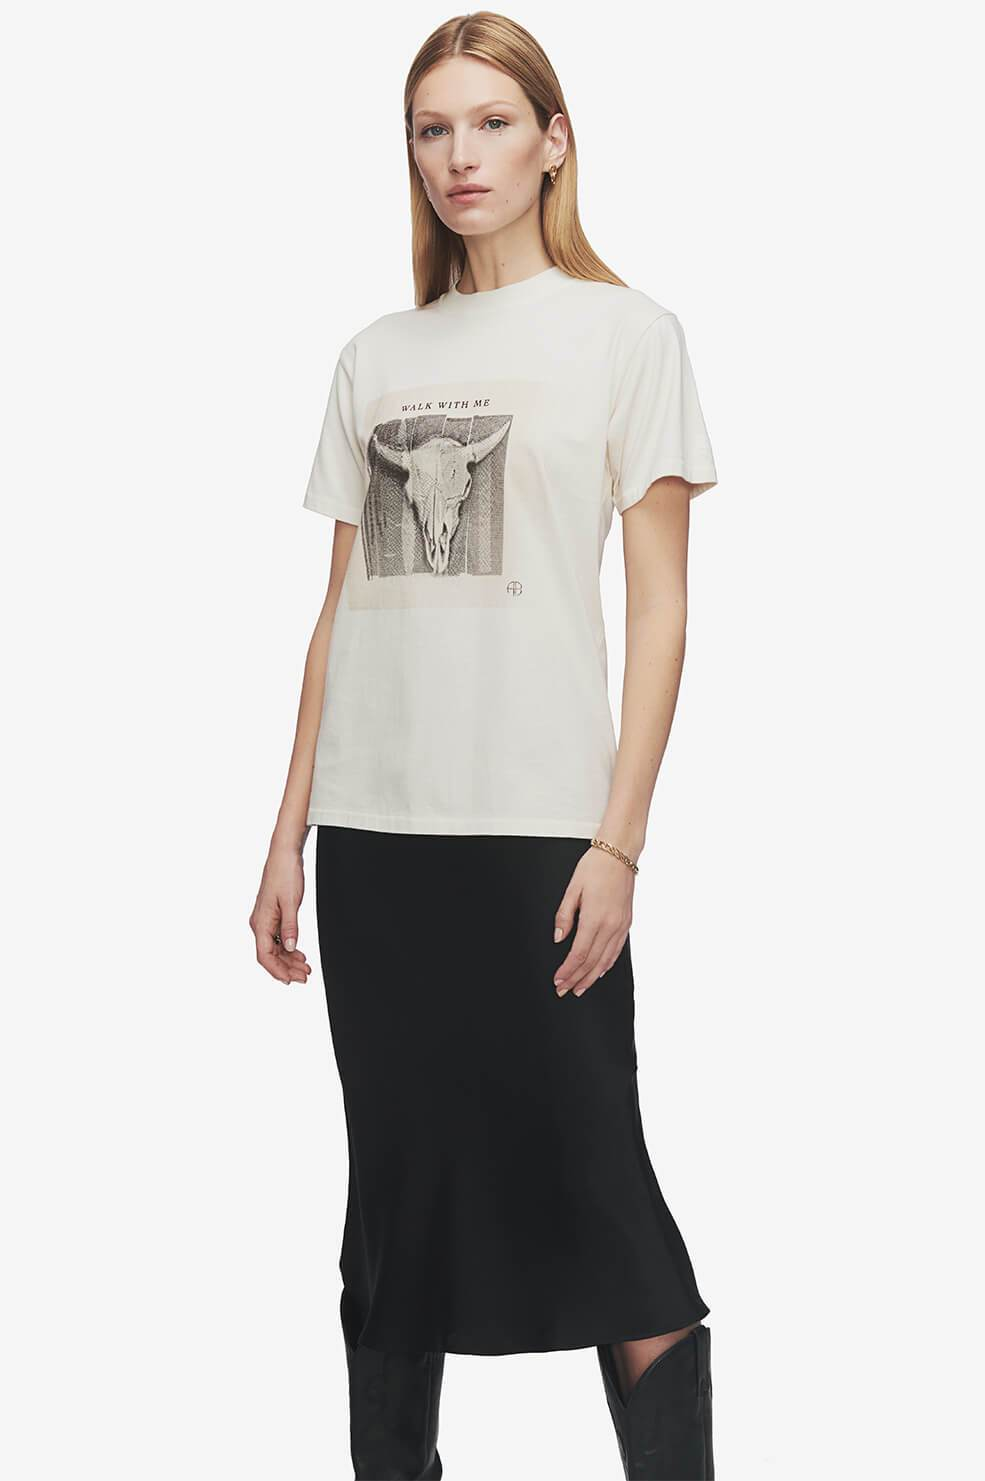 ANINE BING Lili Tee Walk With Me - Ivory